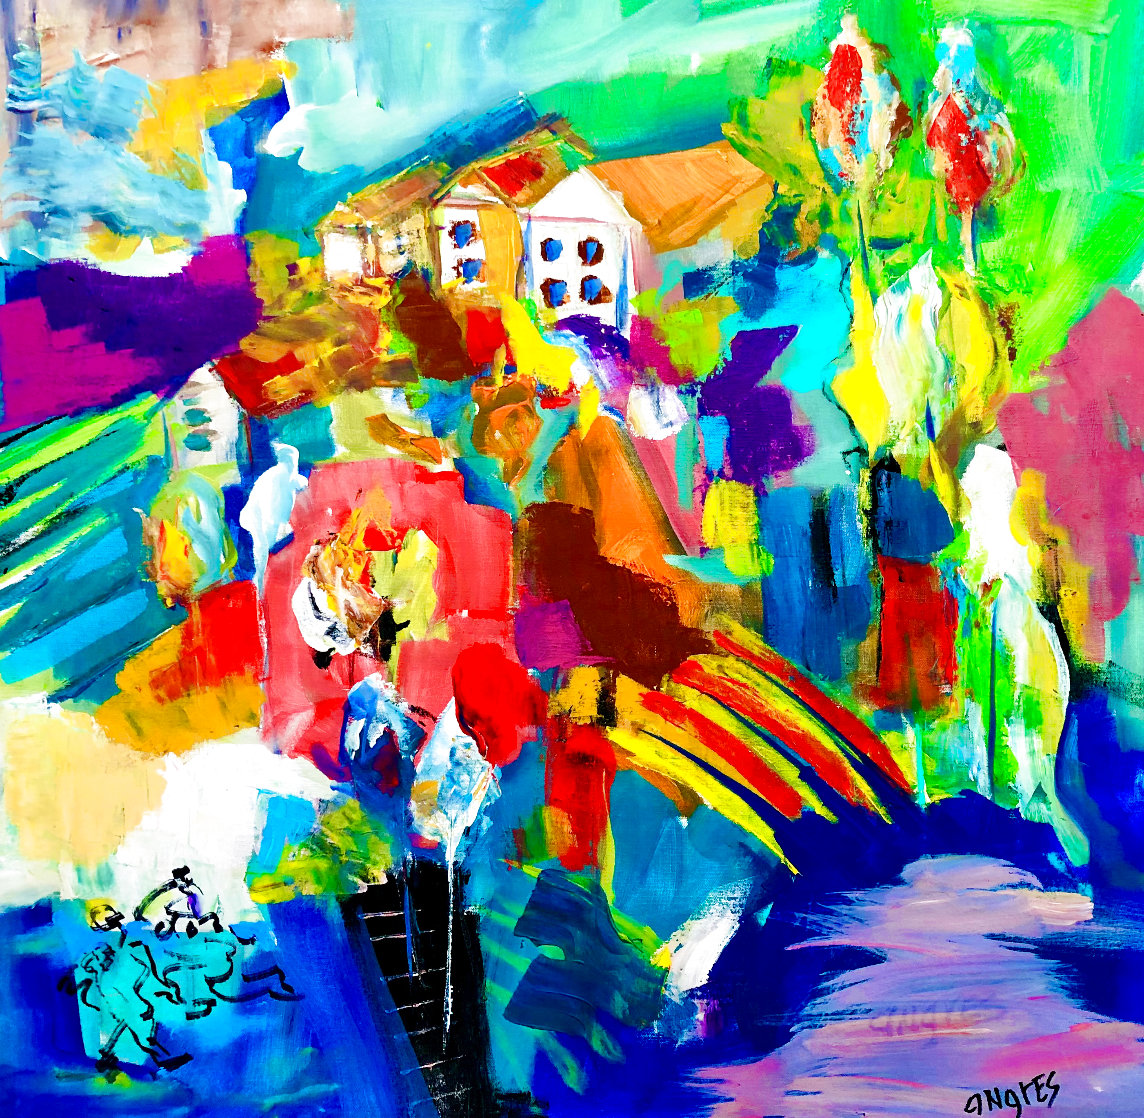 Happy House in the Morning 1994 30x28 Original Painting by Giora Angres